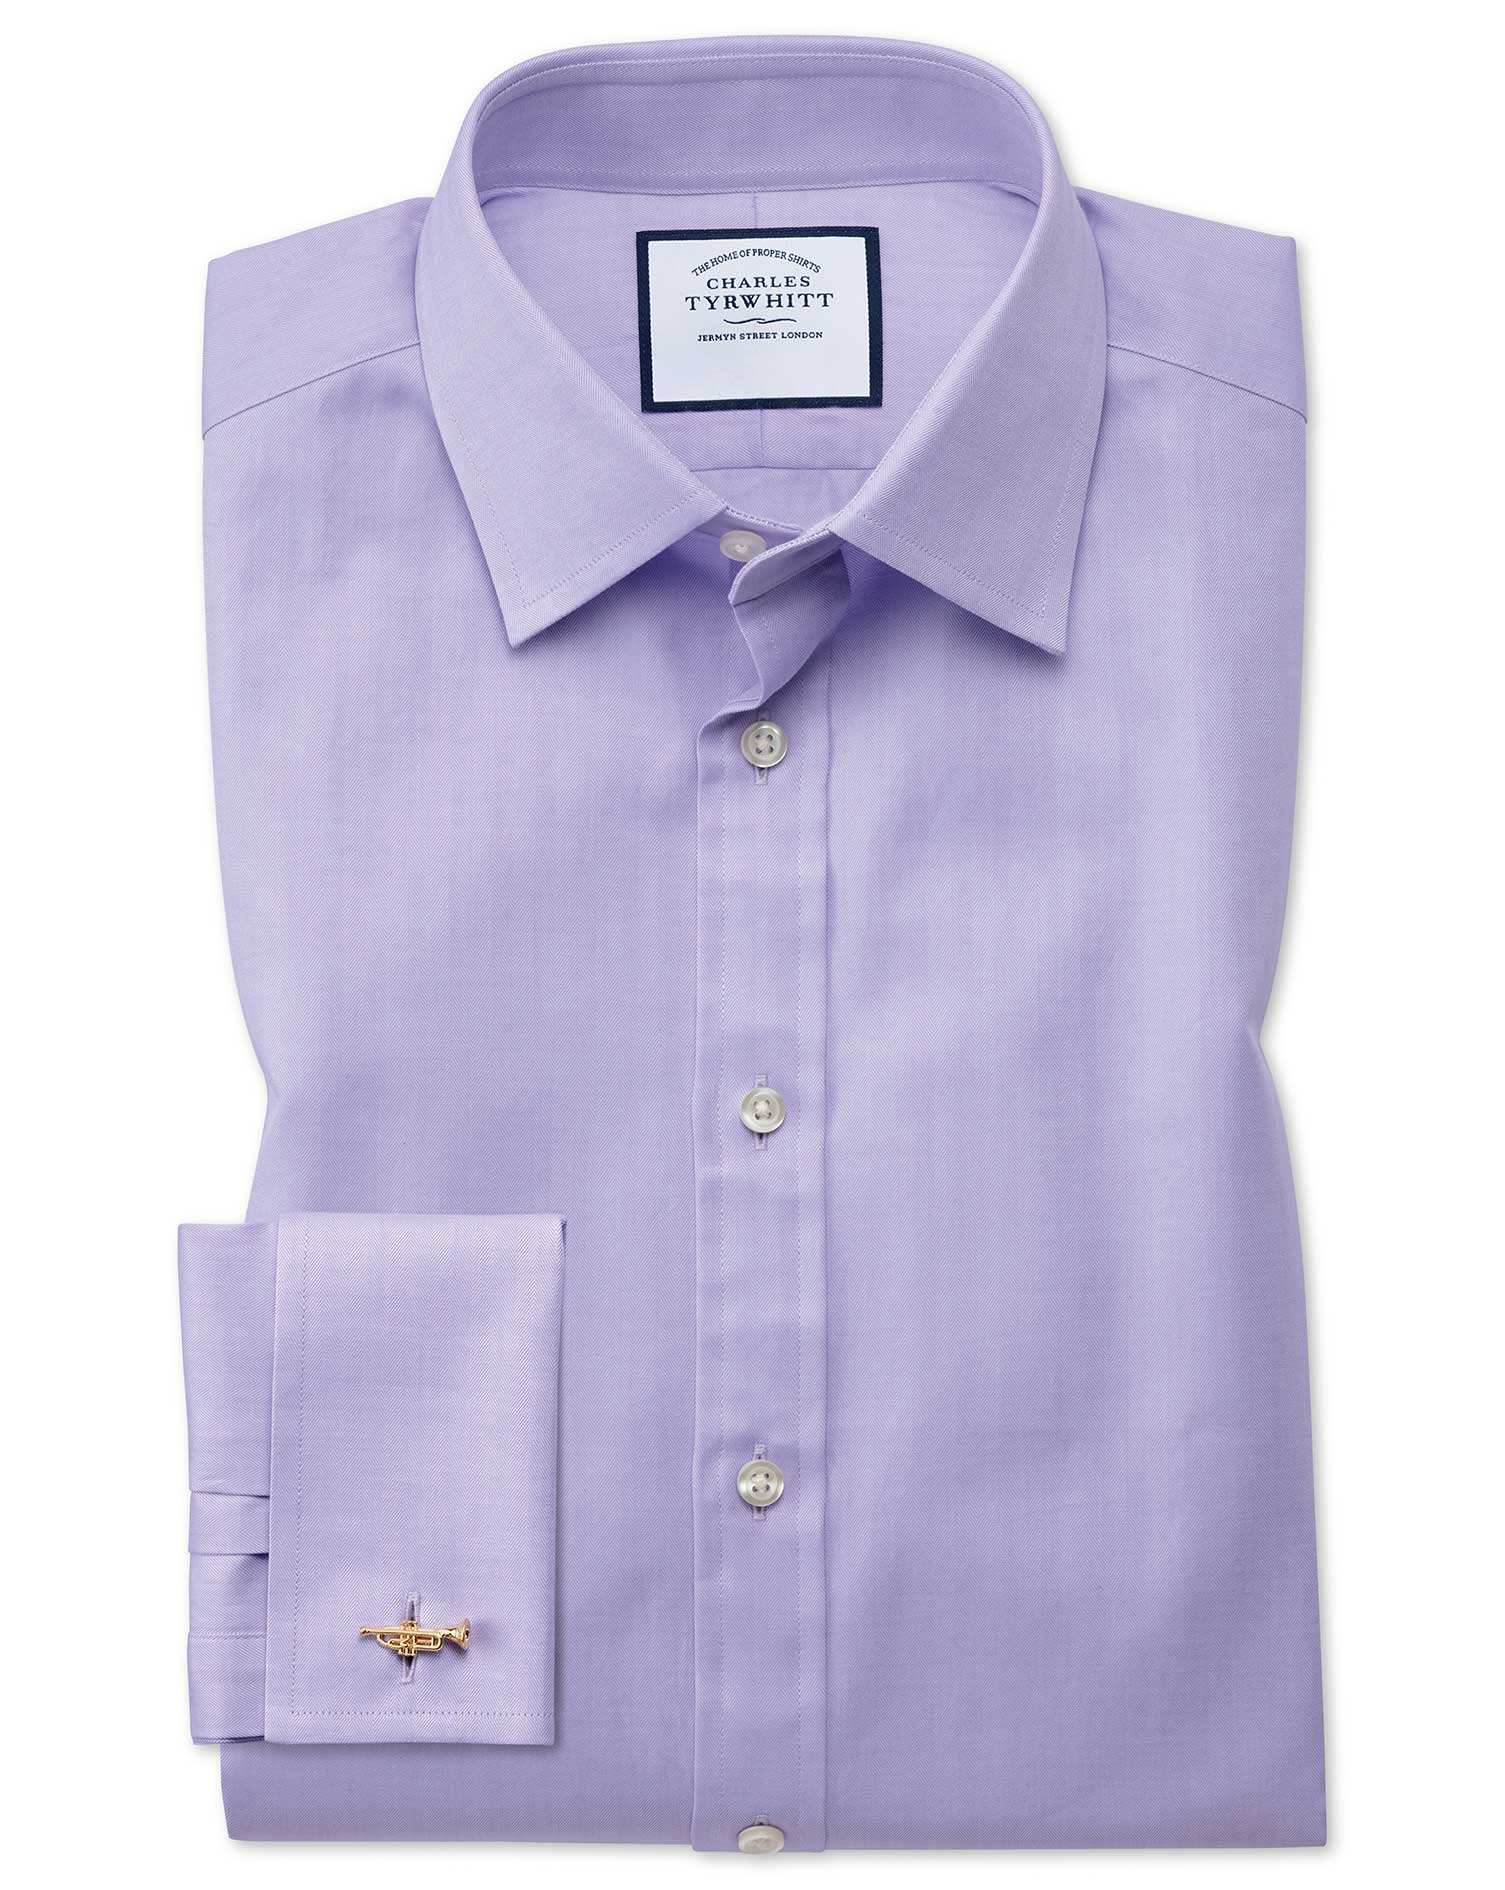 Slim Fit Fine Herringbone Lilac Cotton Formal Shirt Double Cuff Size 17/35 by Charles Tyrwhitt